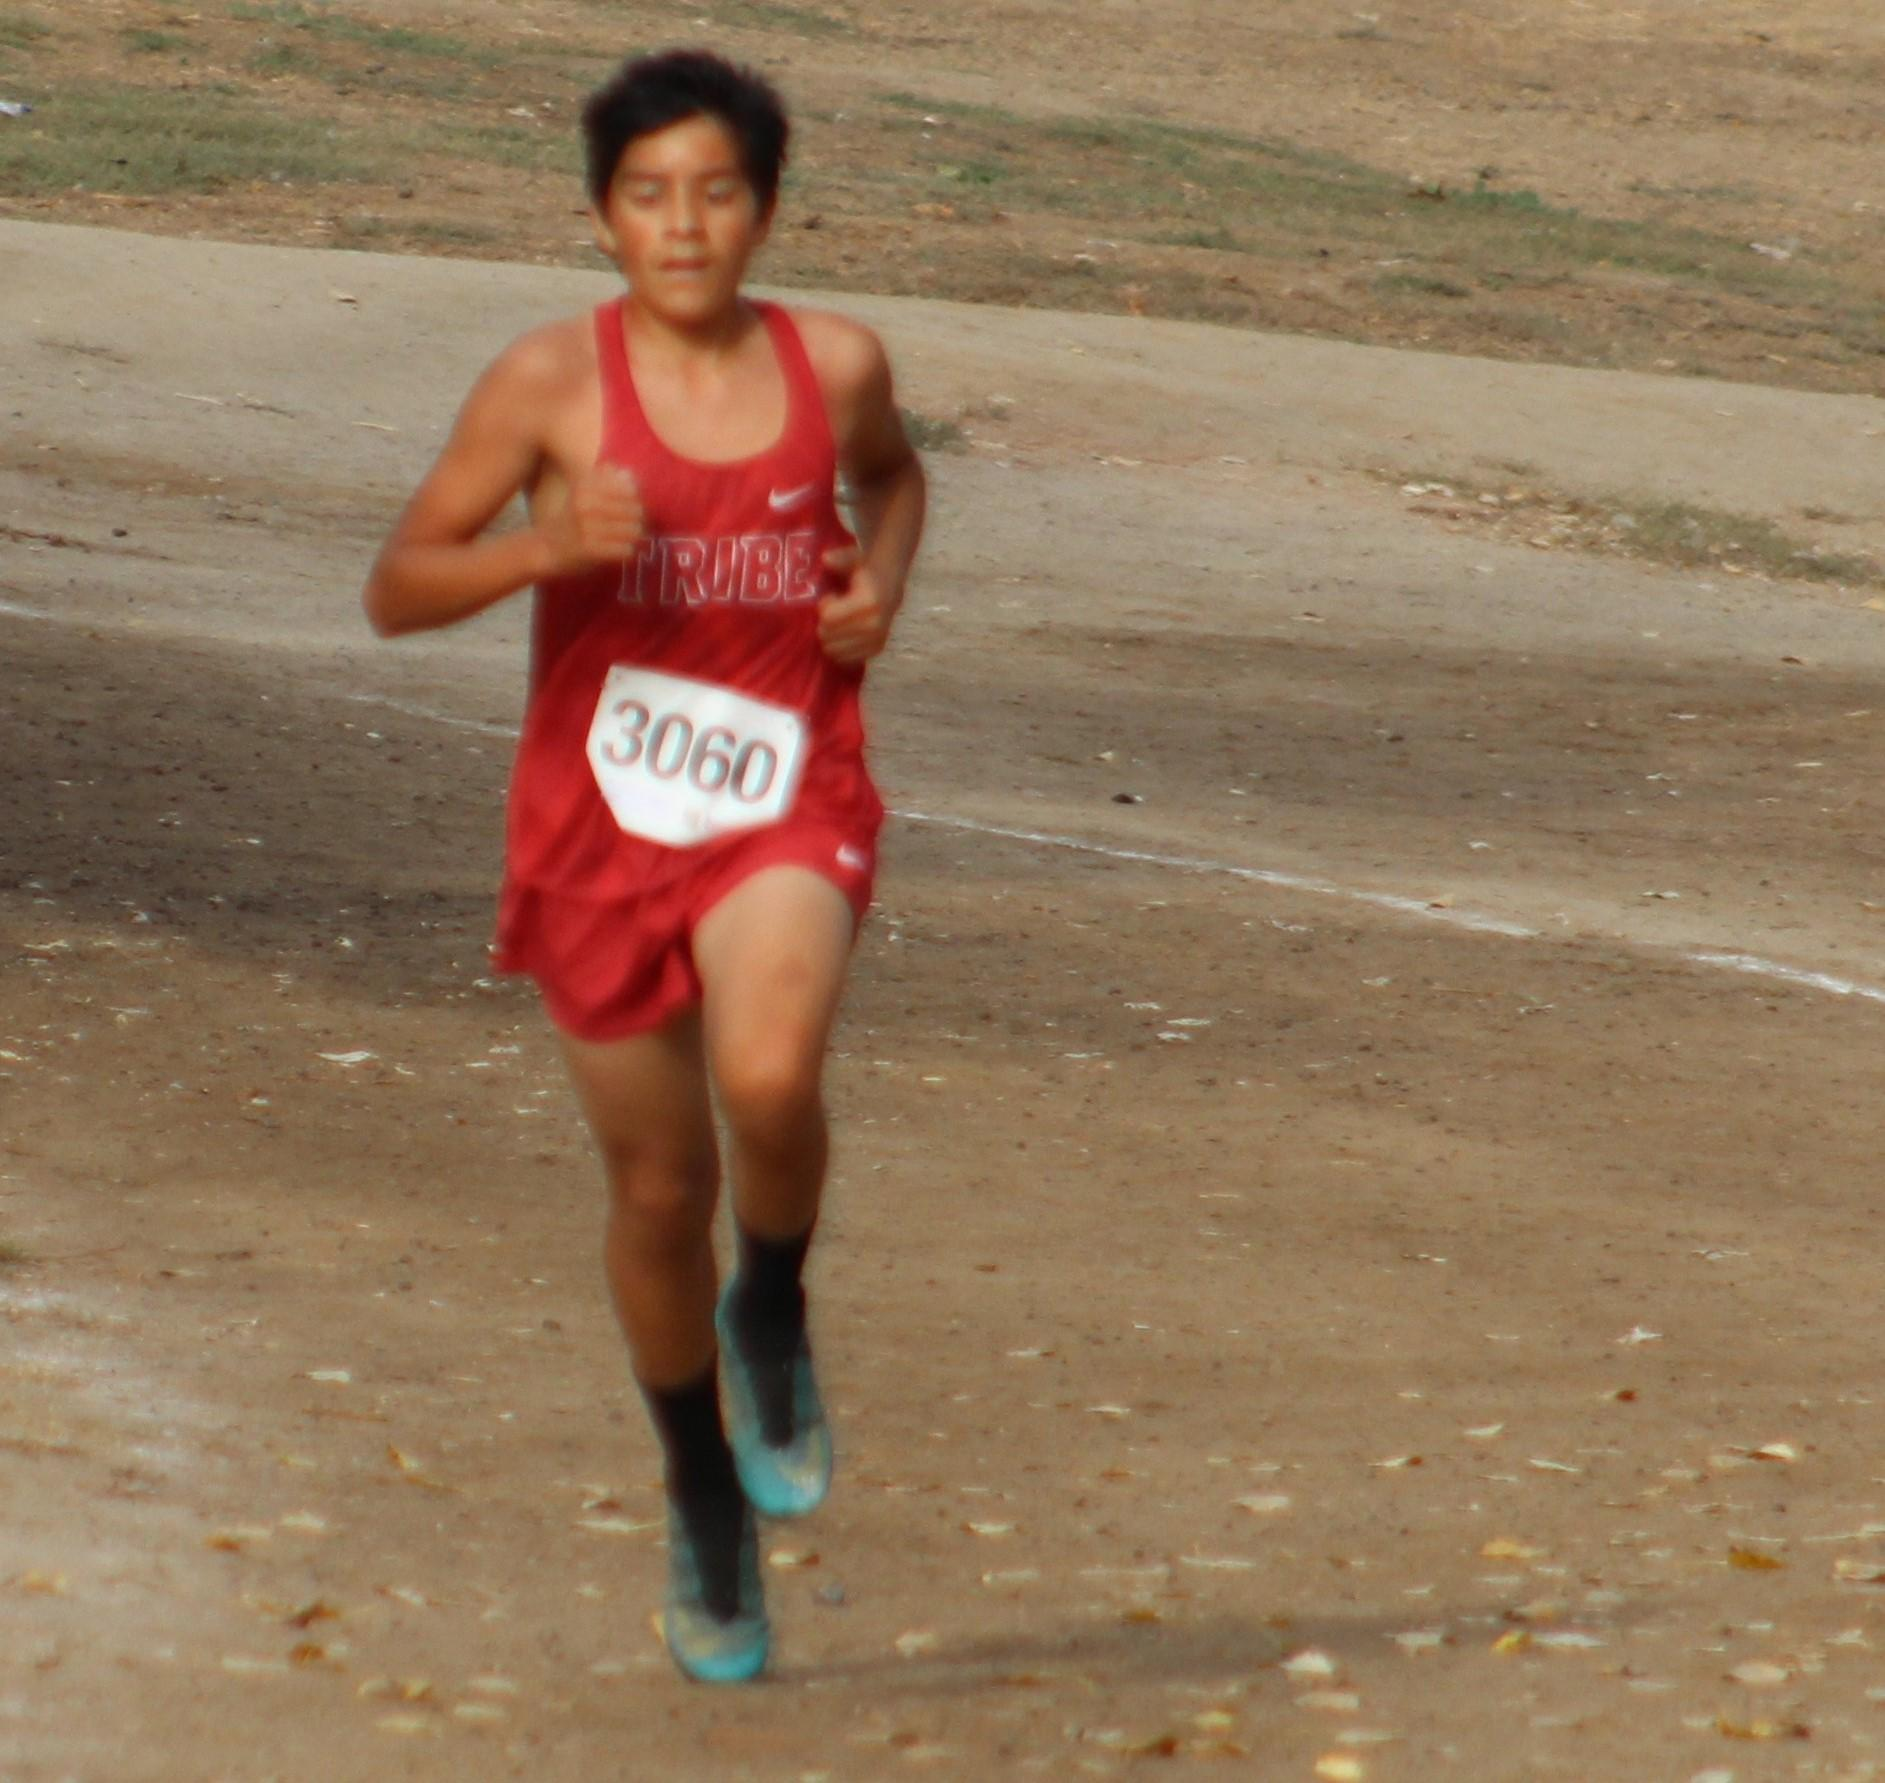 Issac Rivera running